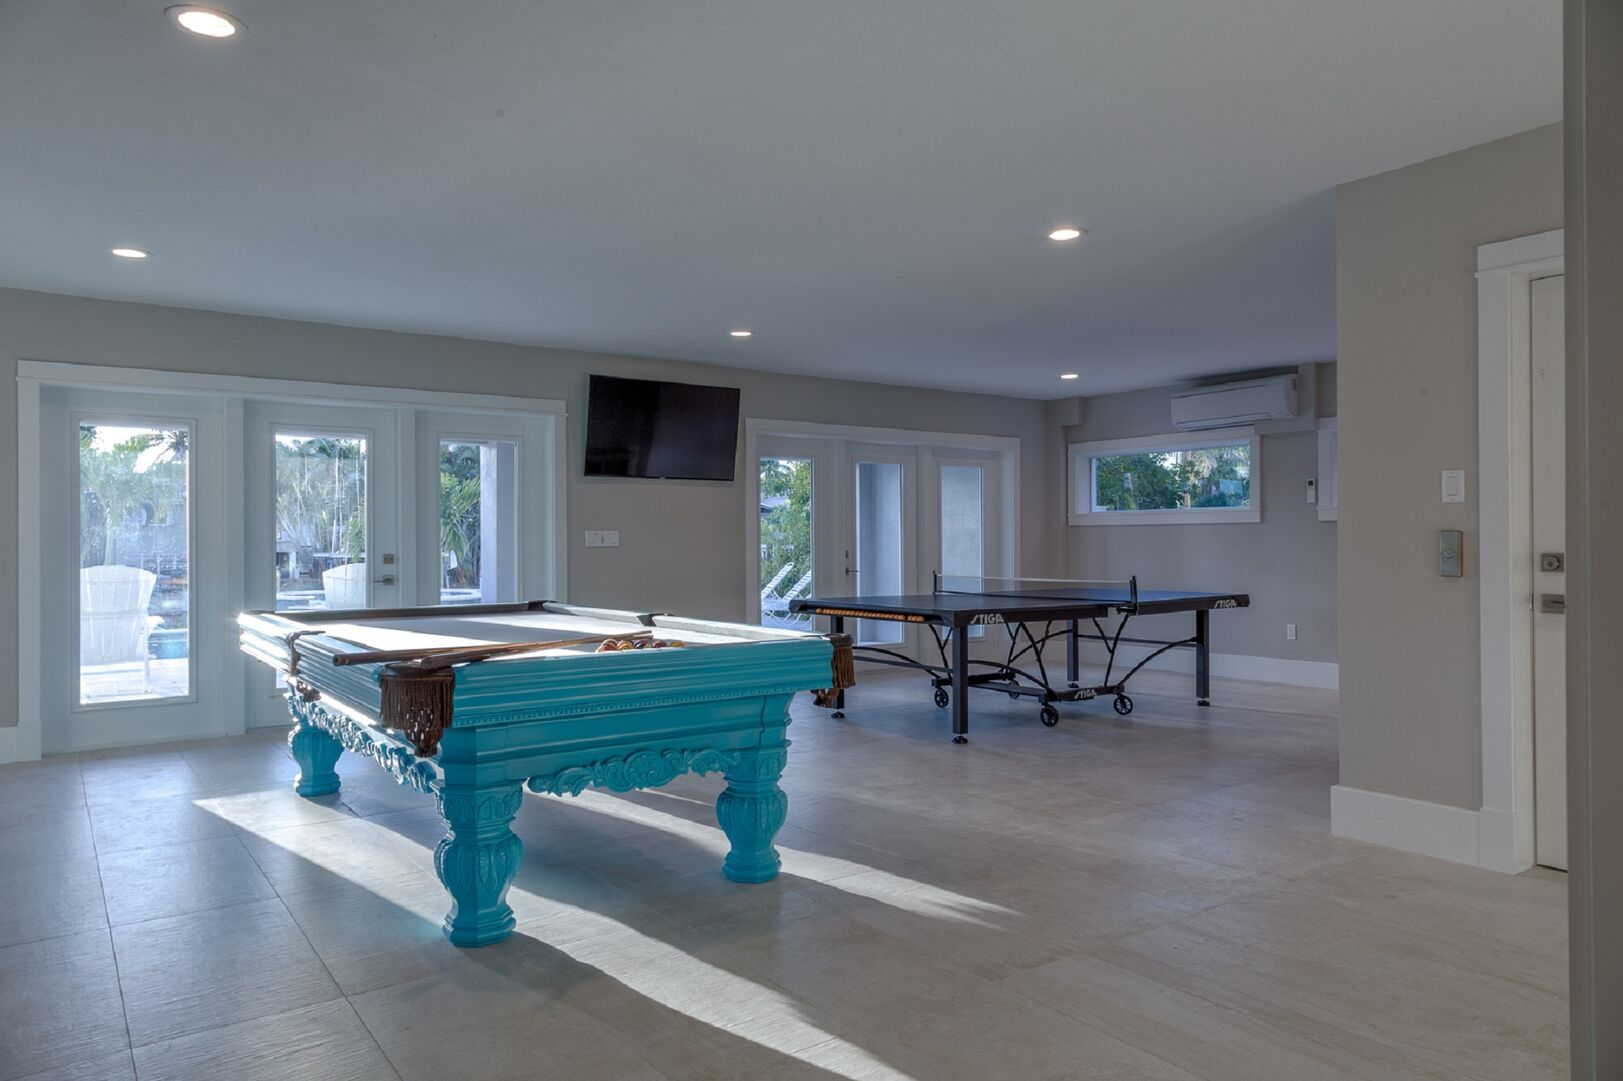 The game room of this vacation house for rent in Fort Myers FL, with wall-mounted TV, pool table, and table tennis.